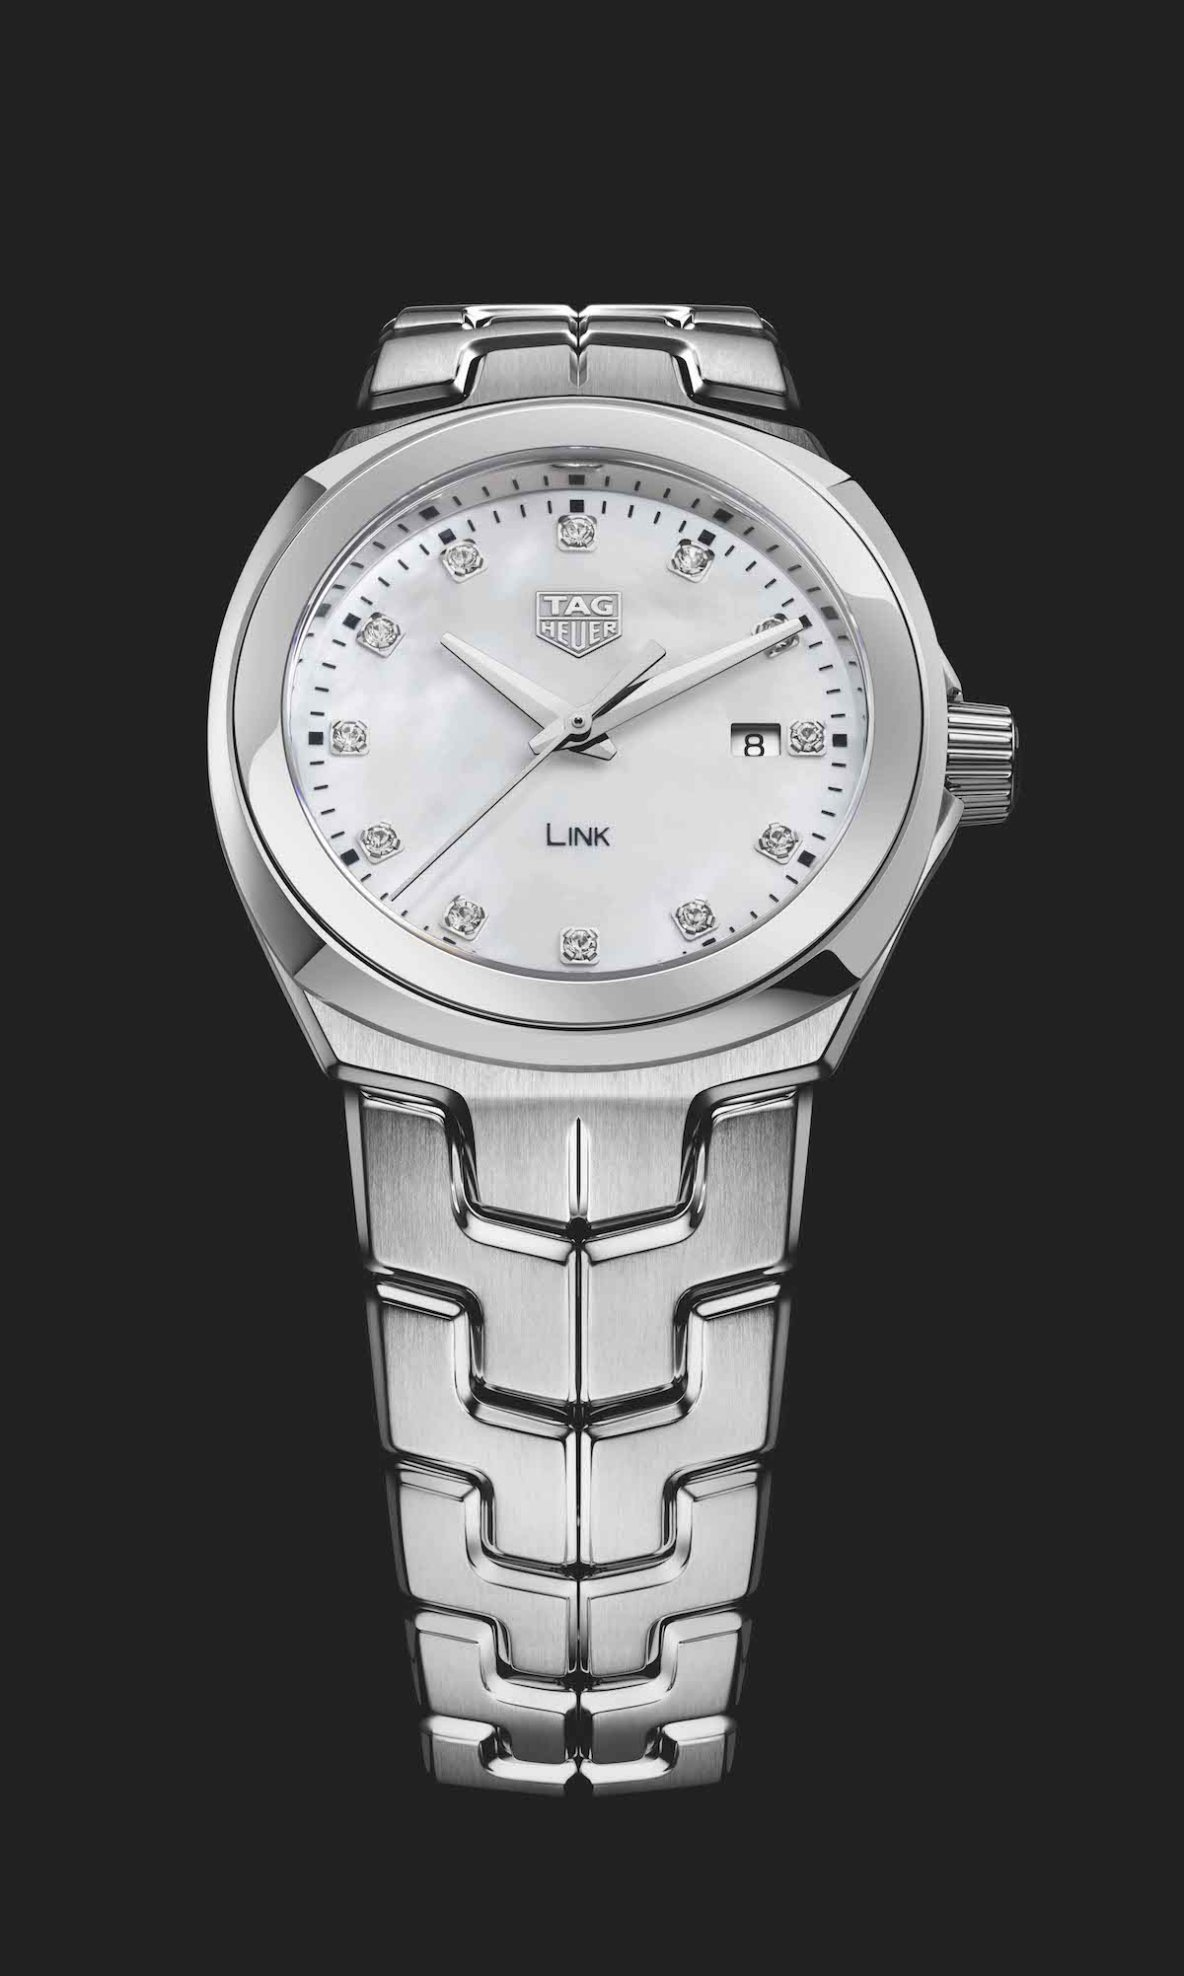 Meet the new tag heuer link ladies watchisthis for Tag heuer c flex